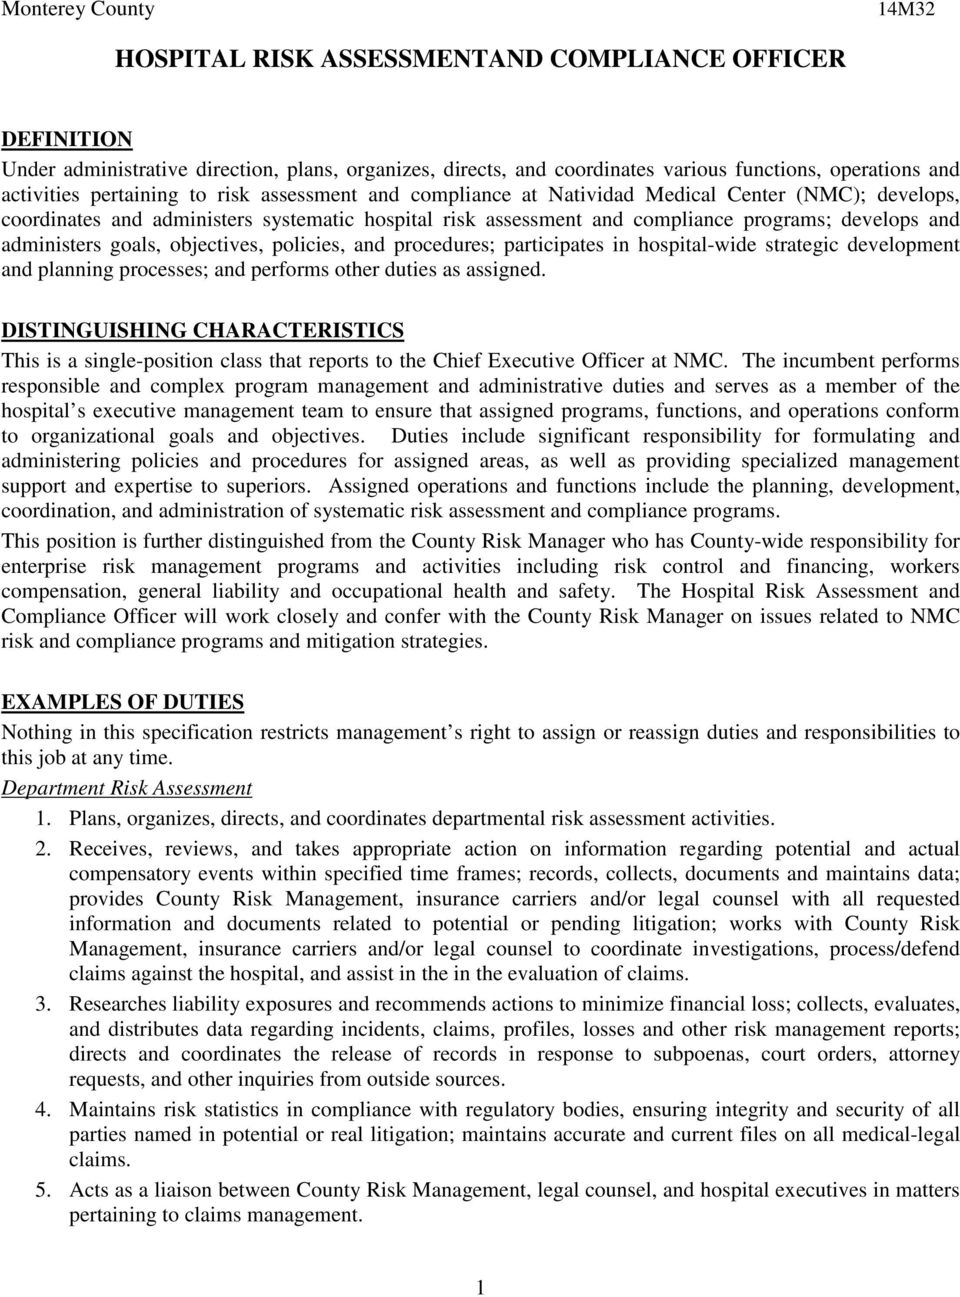 Hospital risk assessmentand compliance officer pdf - Insurance compliance officer job description ...